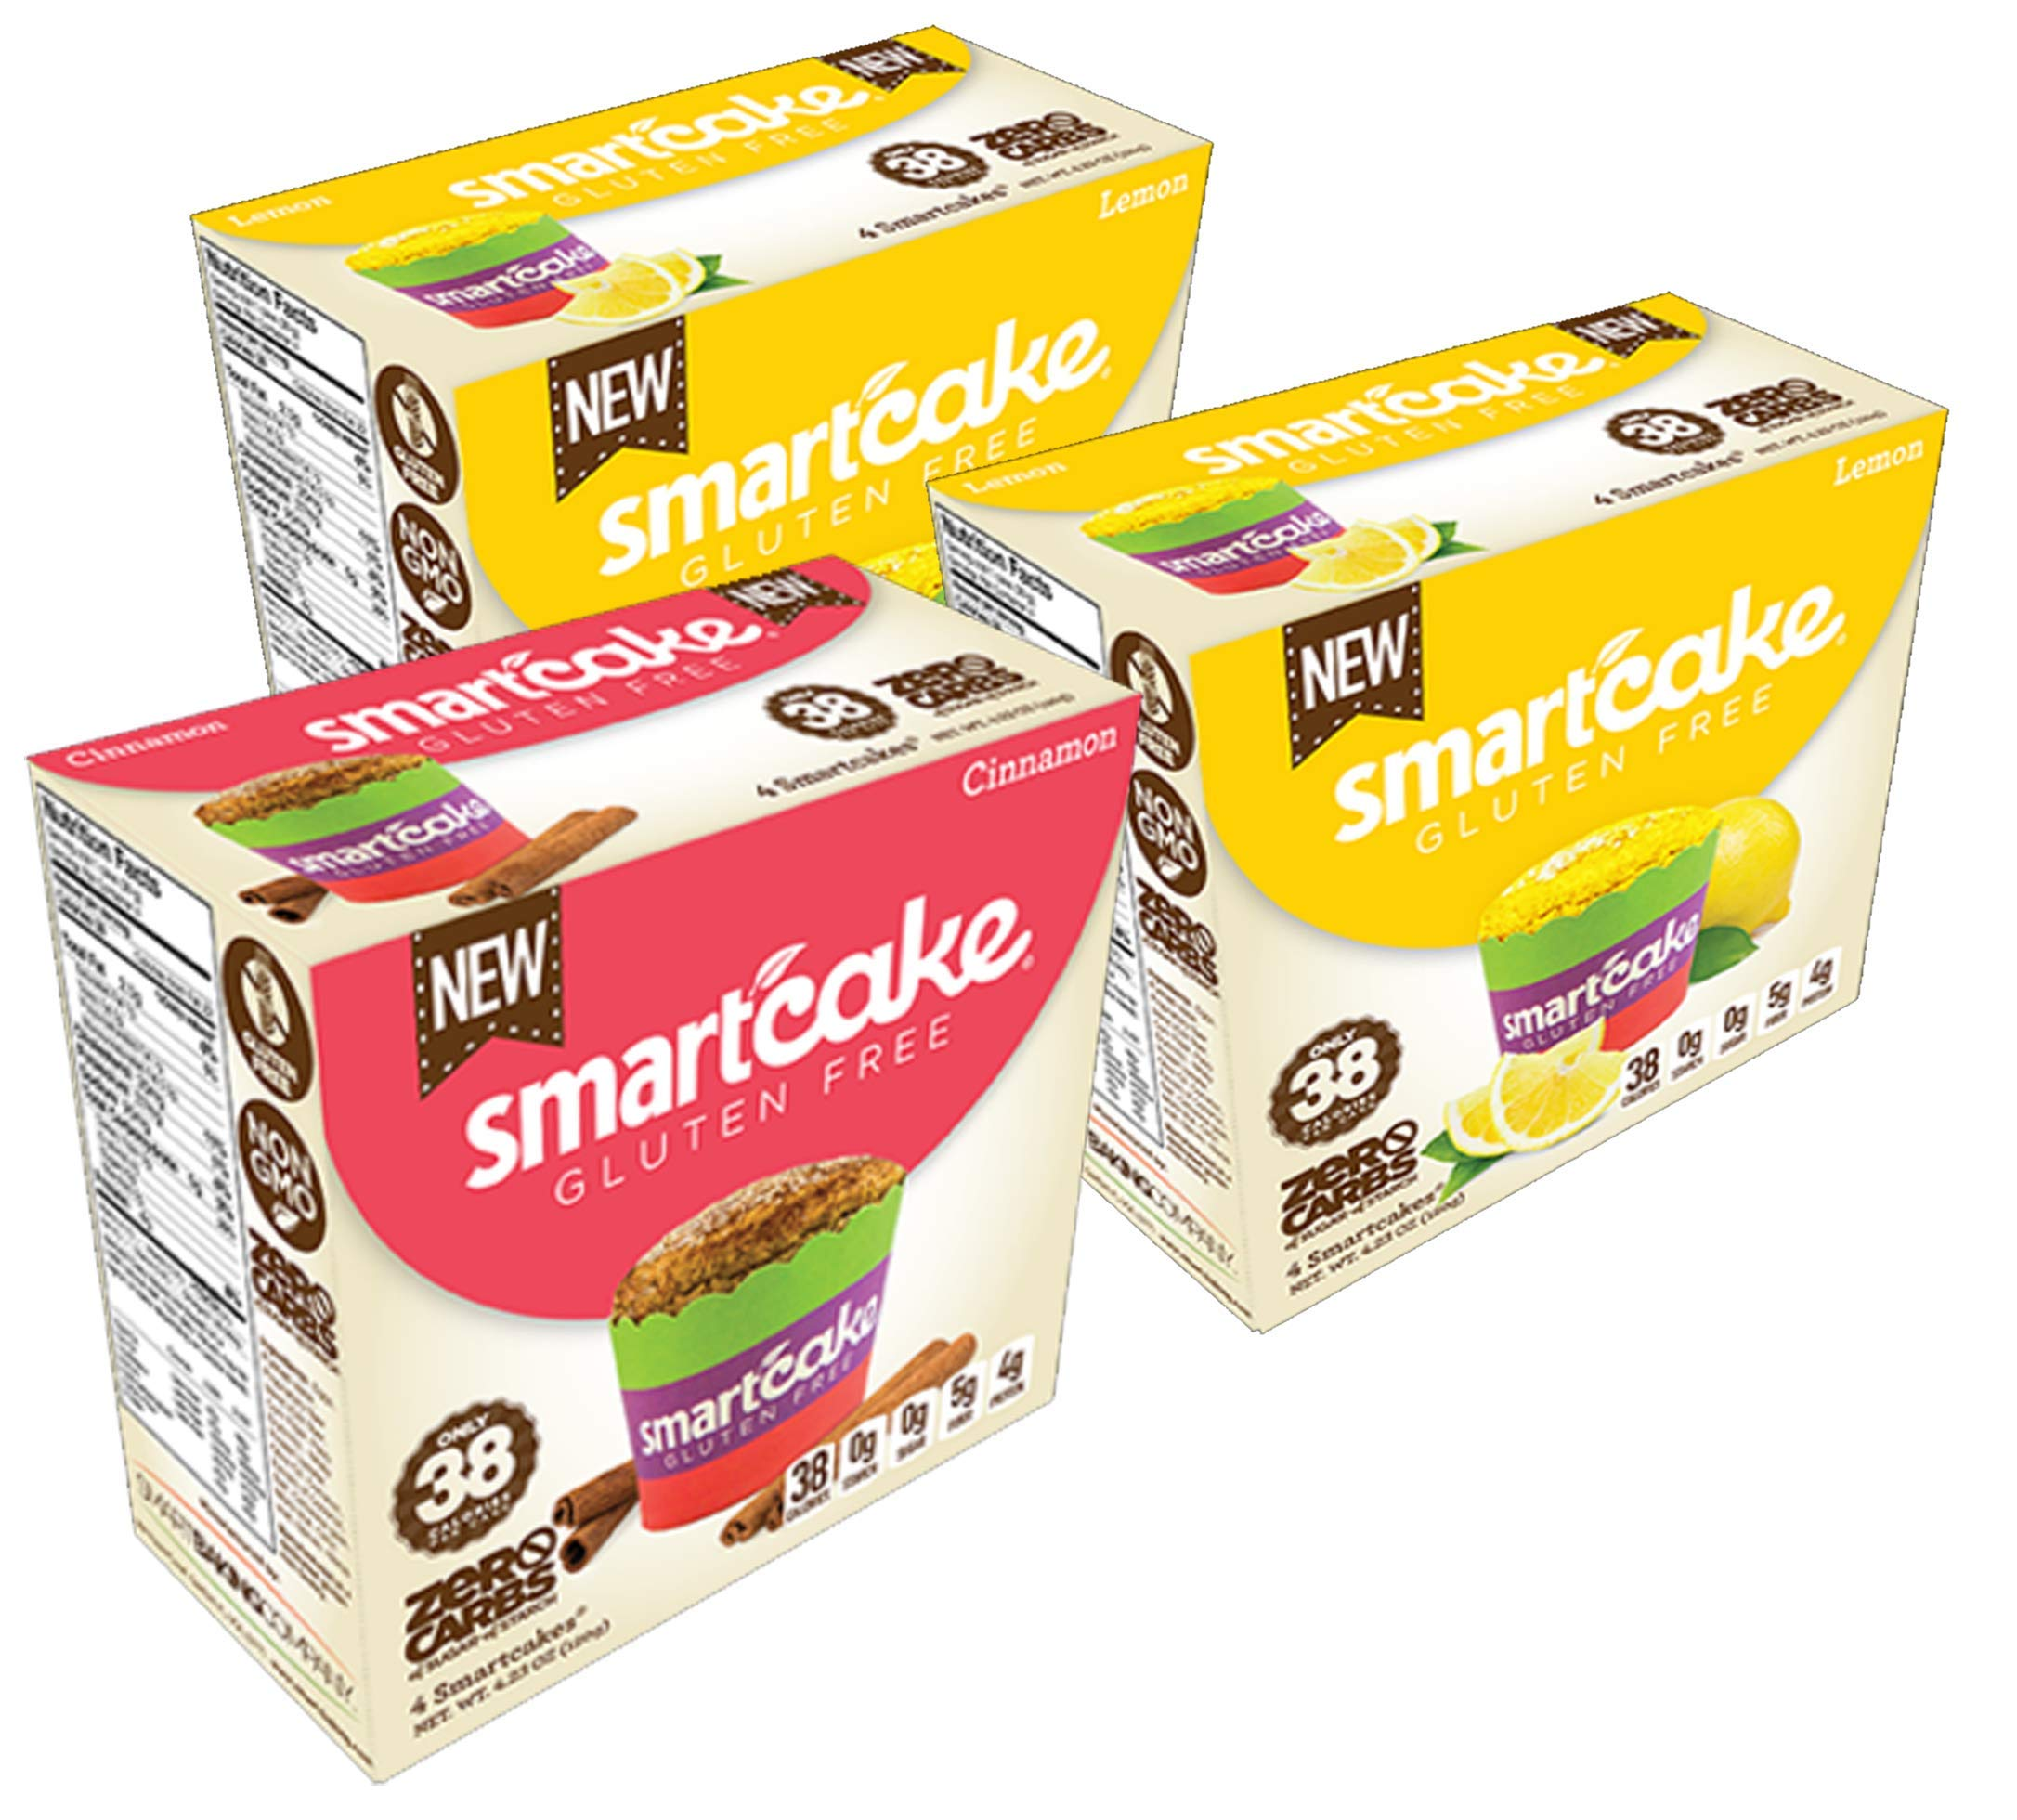 SMARTCAKE Bundle HAS 2X Lemon SMARTCAEK Boxes and 1x Cinnamon SMARTCAKE Box, They are Gluten Free, Sugar Free, Low CARB Snack Cakes: 6X Twin Packs (12 Individual Cakes) by Smart Baking Company